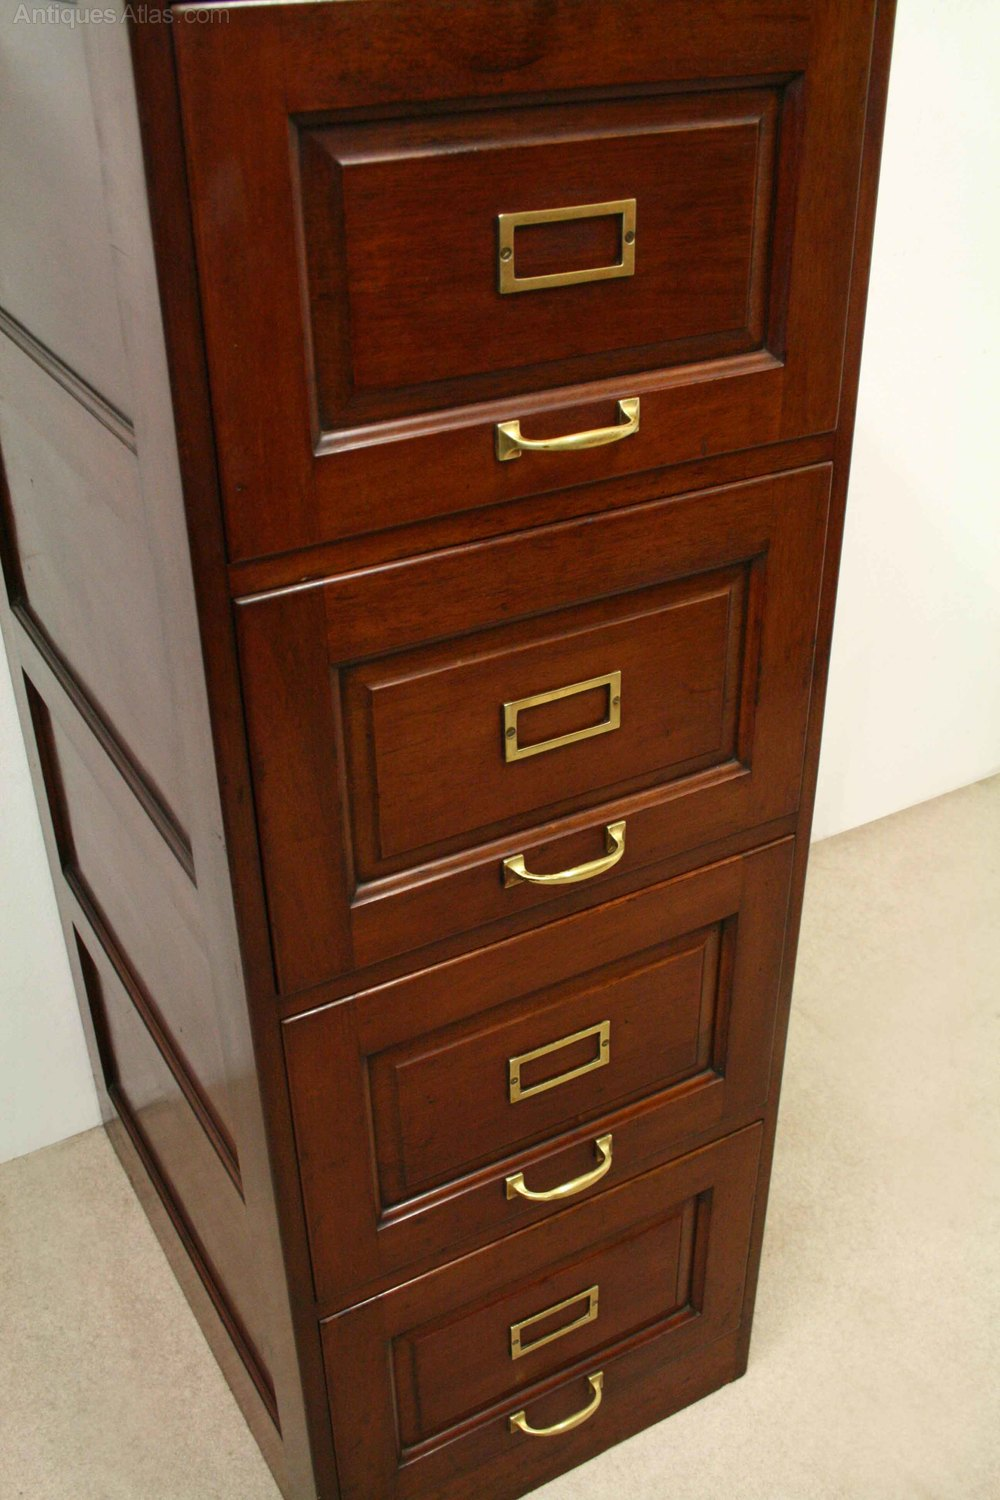 Sporting Antique Slim Oak Tambour Filing Cabinet Cabinets Edwardian (1901-1910)